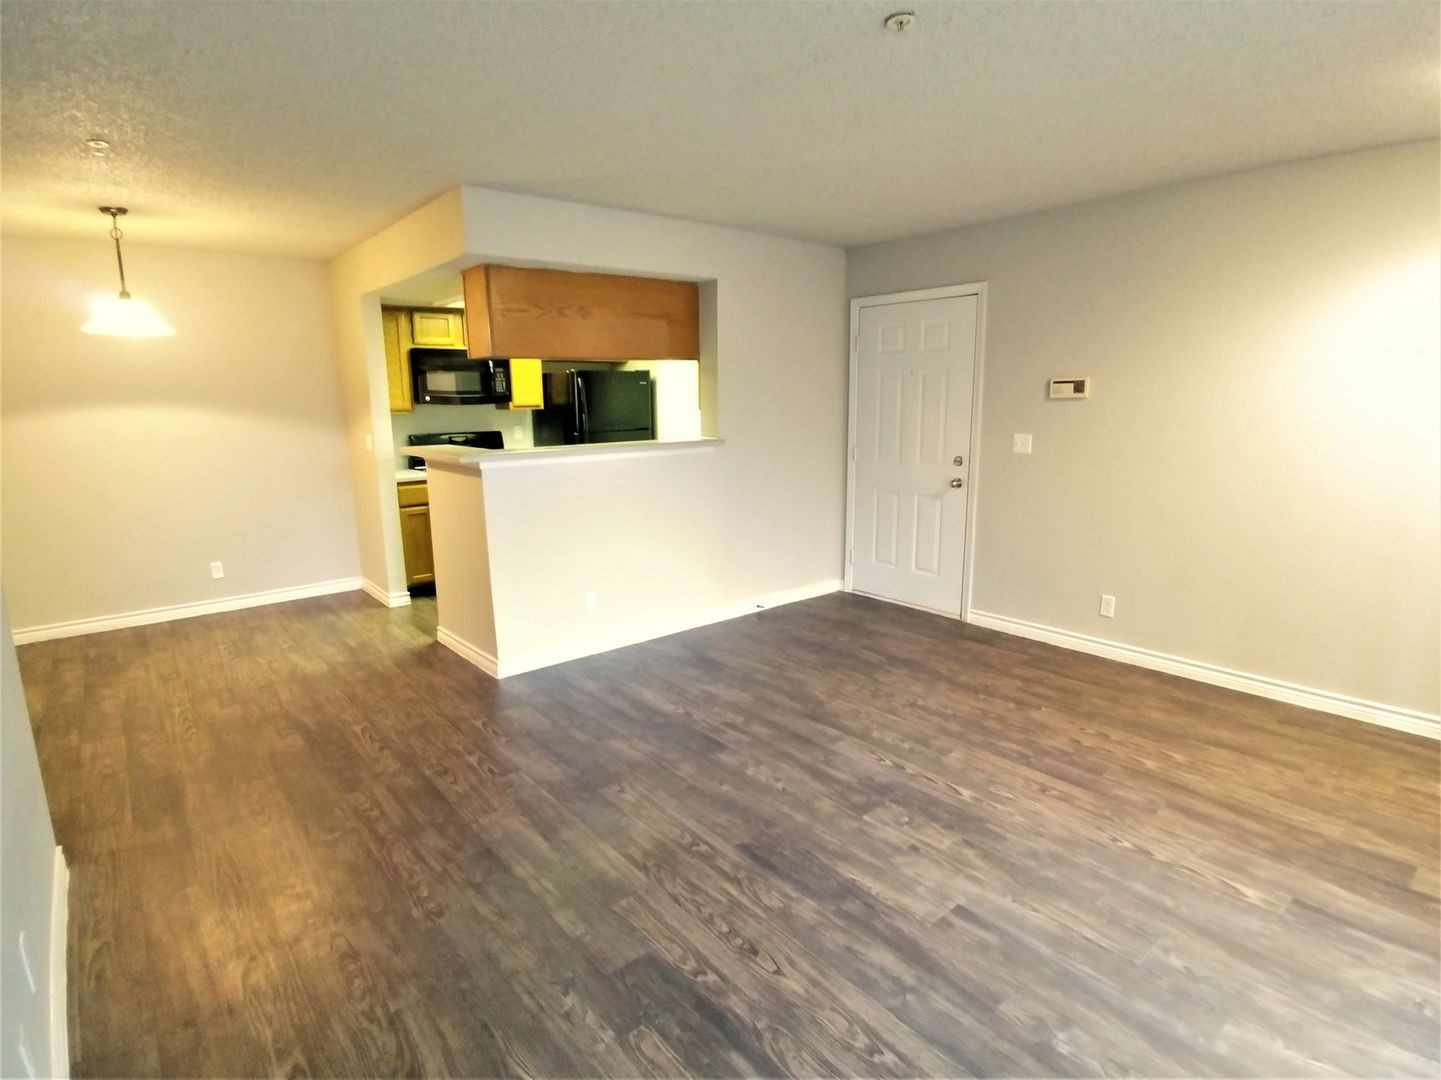 hardwood flooring tulsa ok of wellsford oaks apartments photo gallery tulsa ok apartment pictures within business center